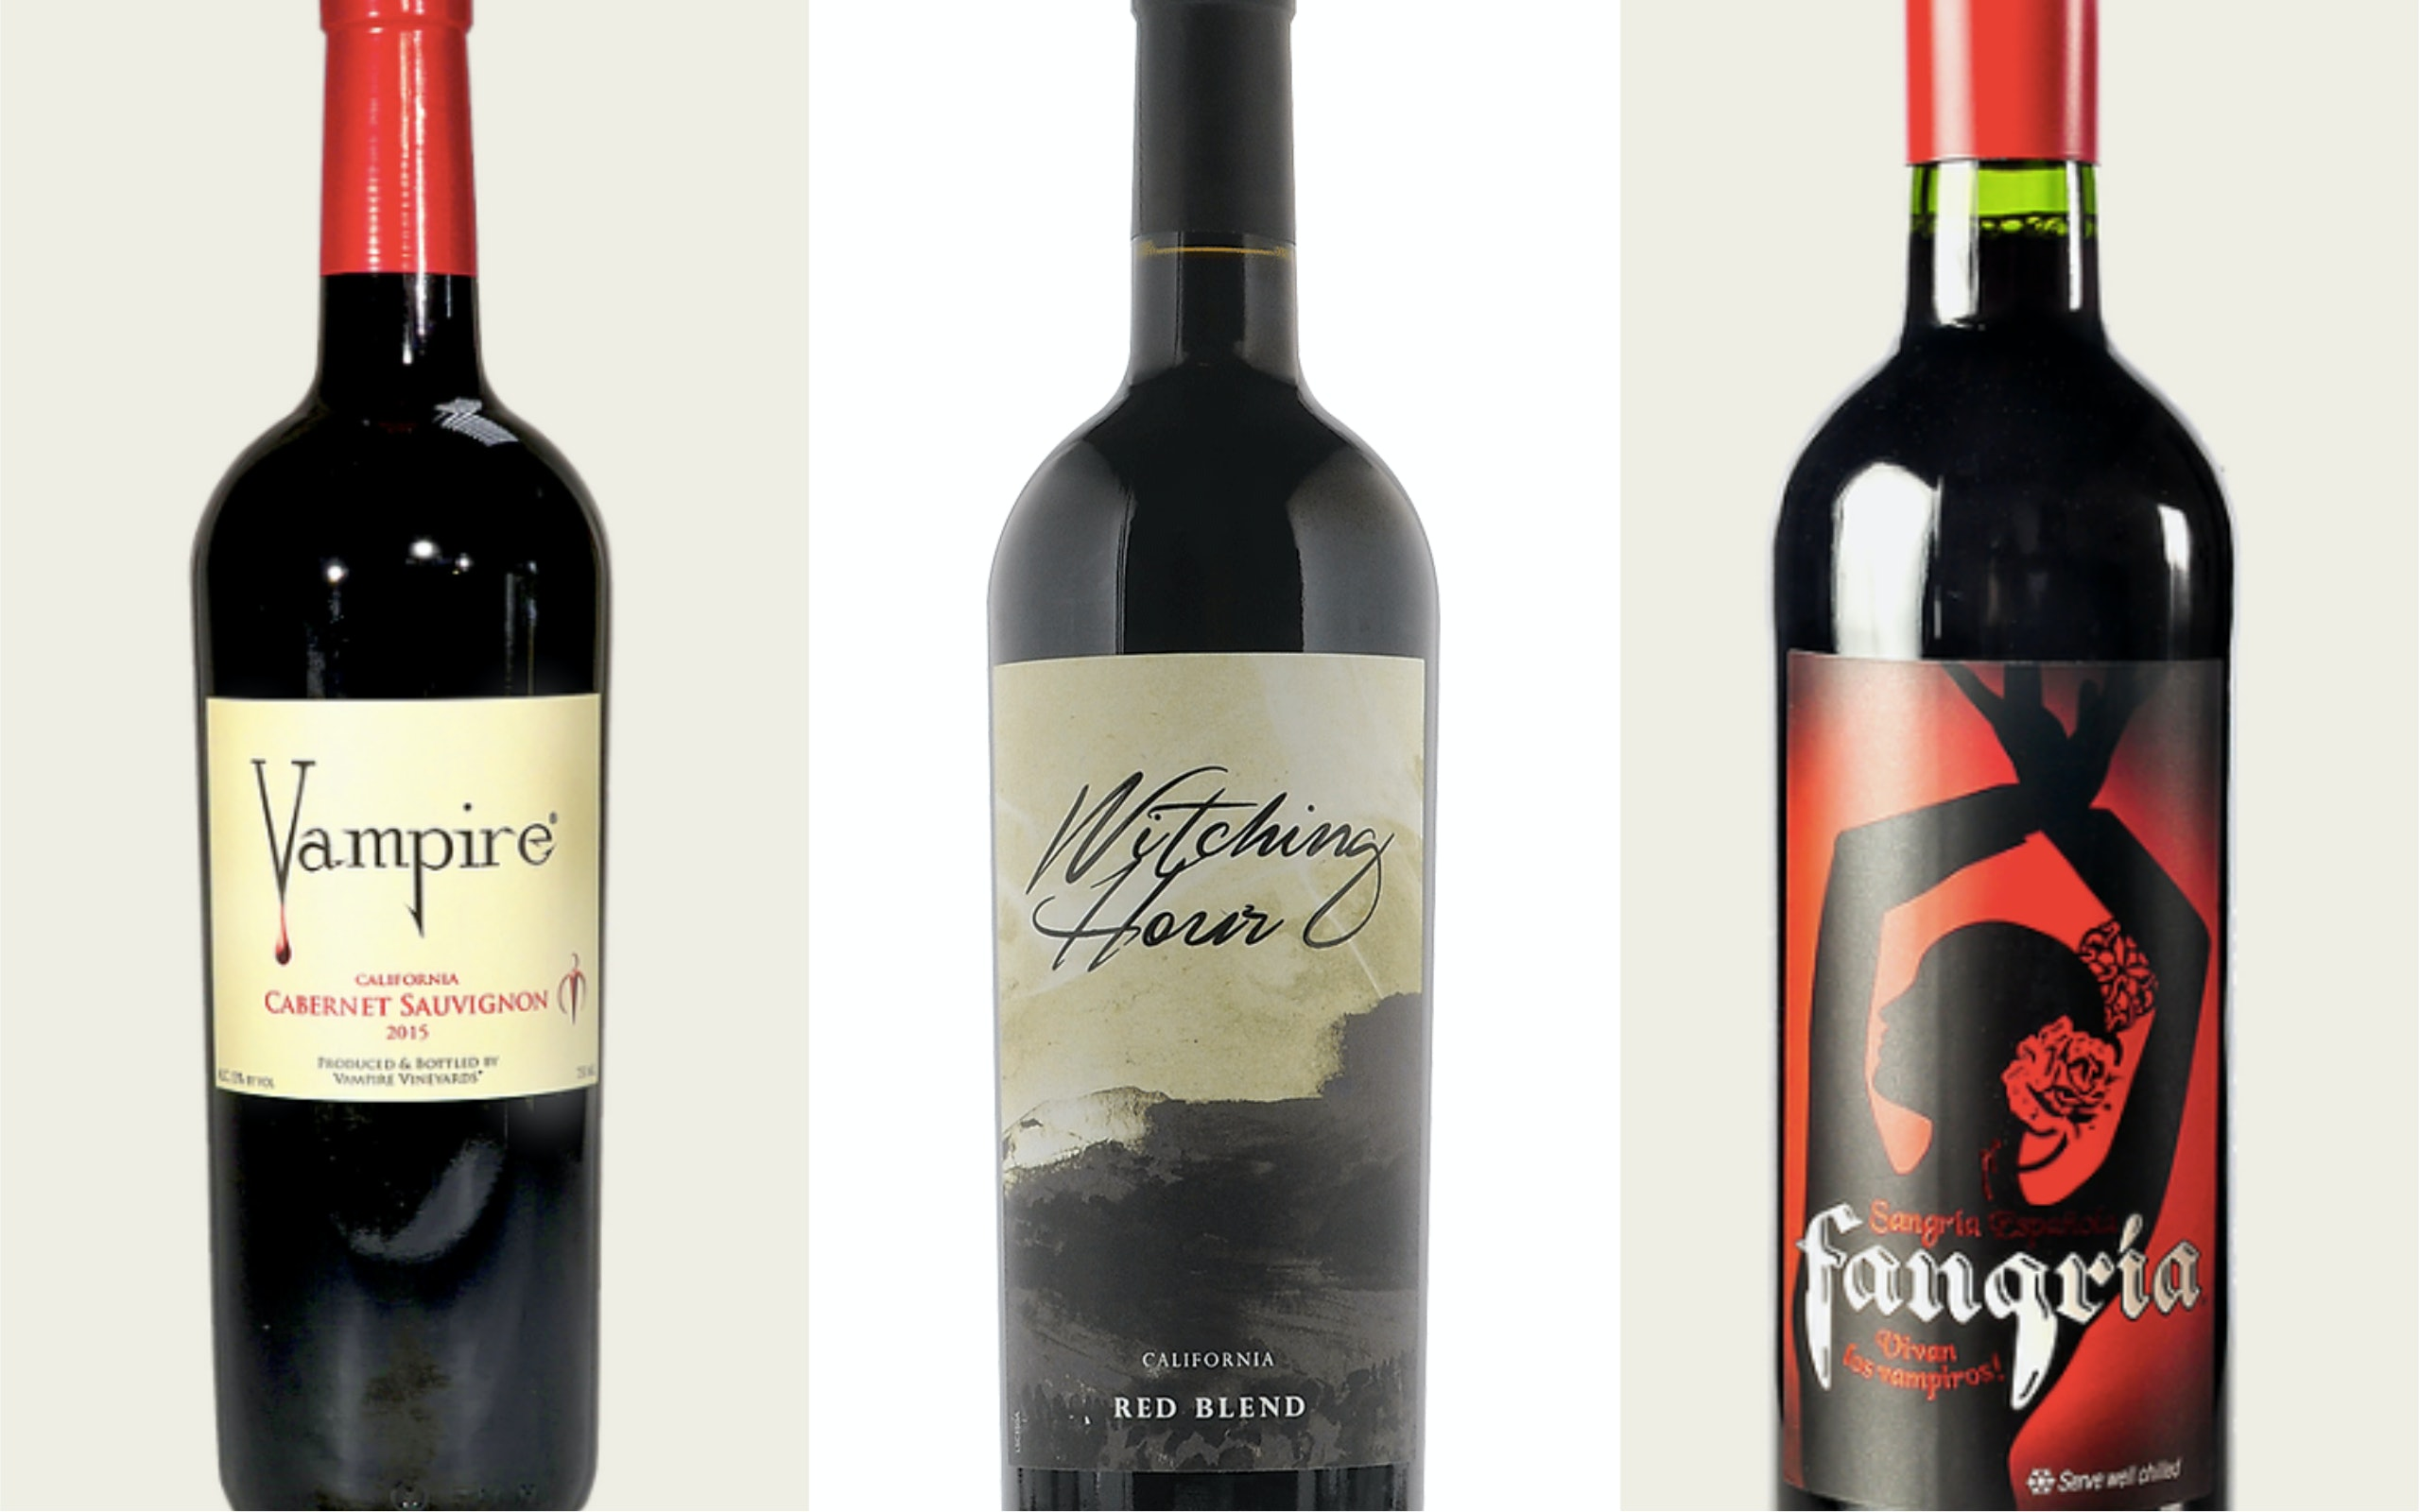 Amazing 7 Wines For Halloween That You Can Purchase Online